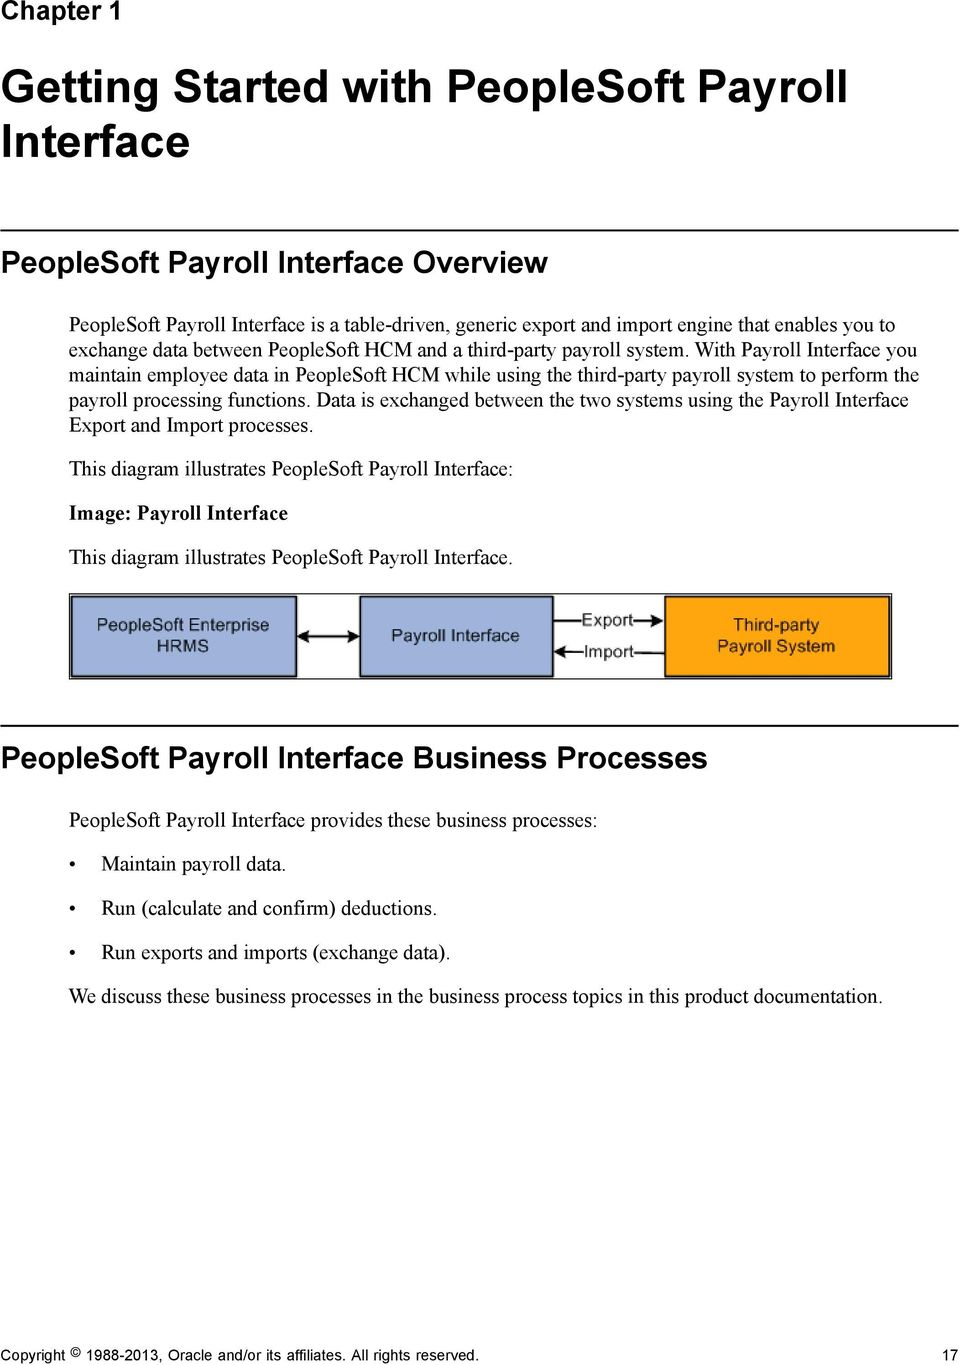 With Payroll Interface you maintain employee data in PeopleSoft HCM while  using the third-party